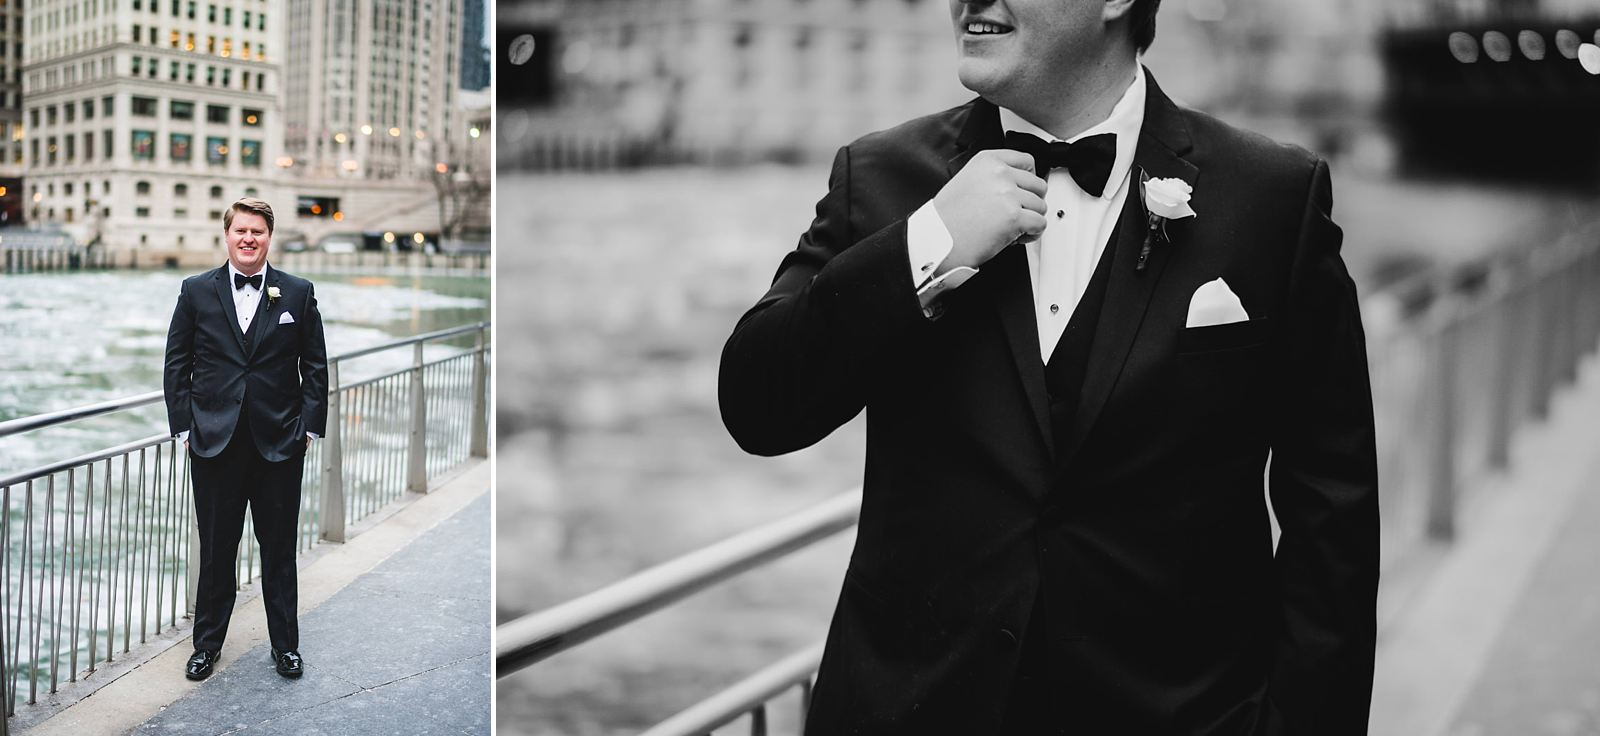 14 handsome groom - Drake Chicago Luxury Wedding Photography // Kate + Royce